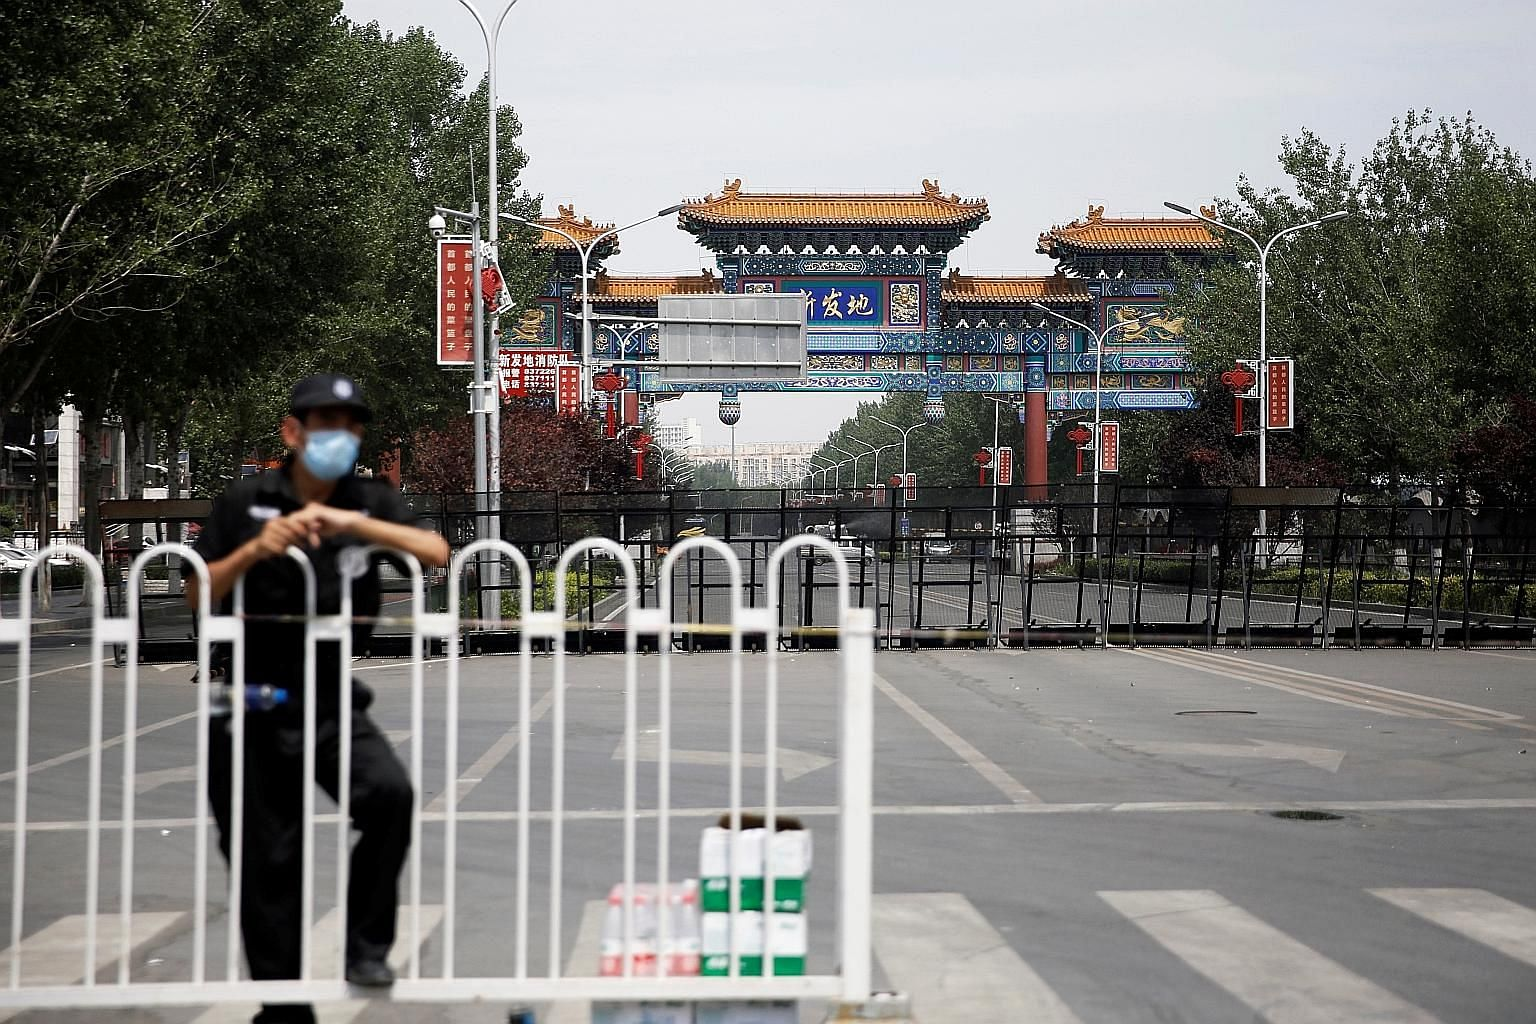 A security officer at the blocked entrance to the Xinfadi wholesale market in Beijing on June 16. When the first case there was detected on June 11, Beijing swiftly closed the market, which houses some 8,000 stallholders and workers and is visited by